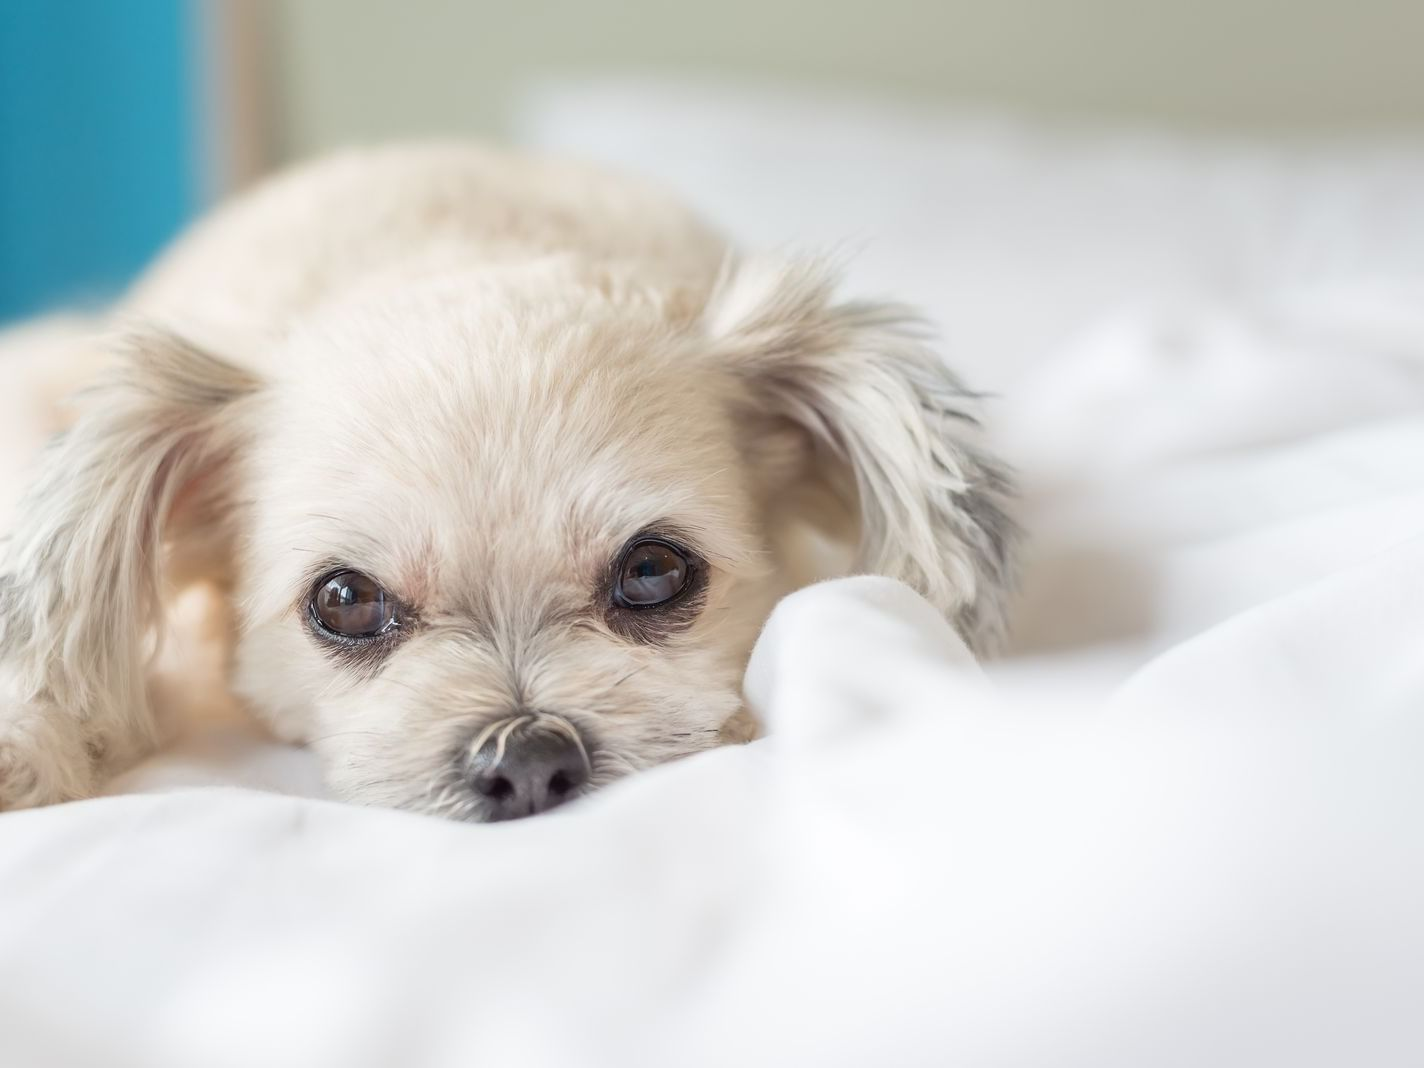 a small dog lying on a bed